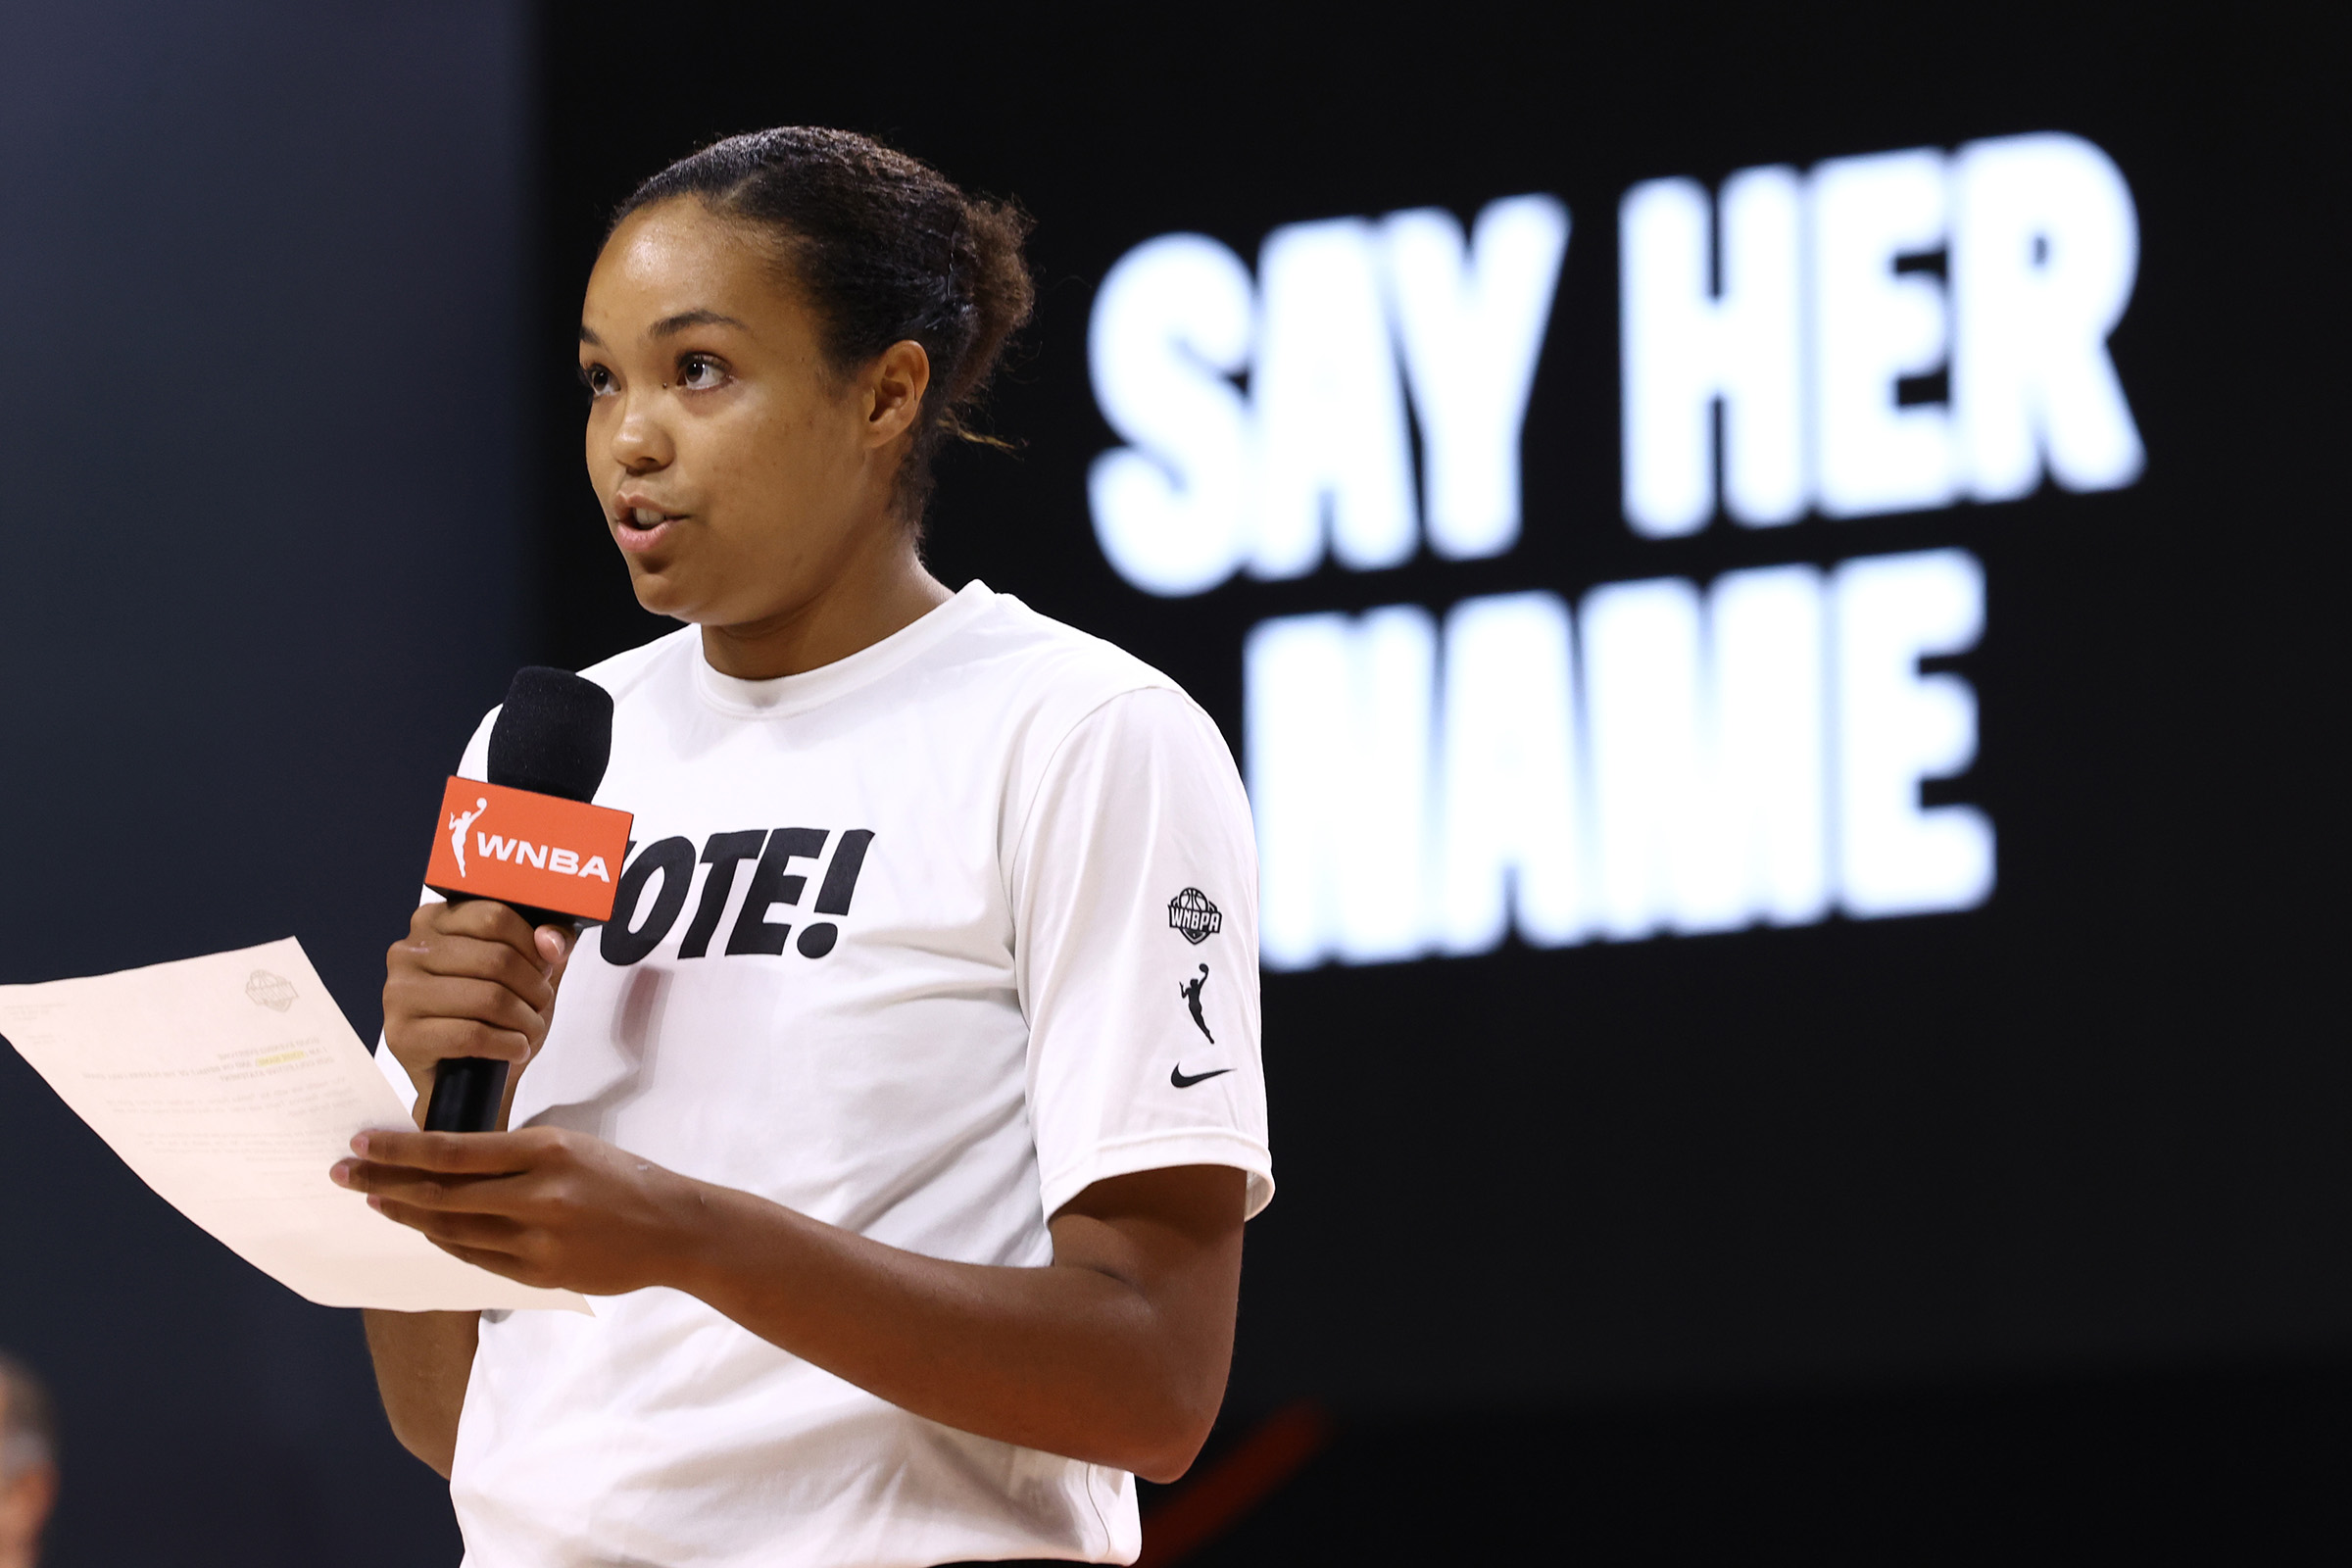 Napheesa Collier of the Minnesota Lynx gives a speech before Game 2 of the semifinals of the 2020 WNBA Playoffs on September 24, at the Feld Entertainment Center in Palmetto, Florida.